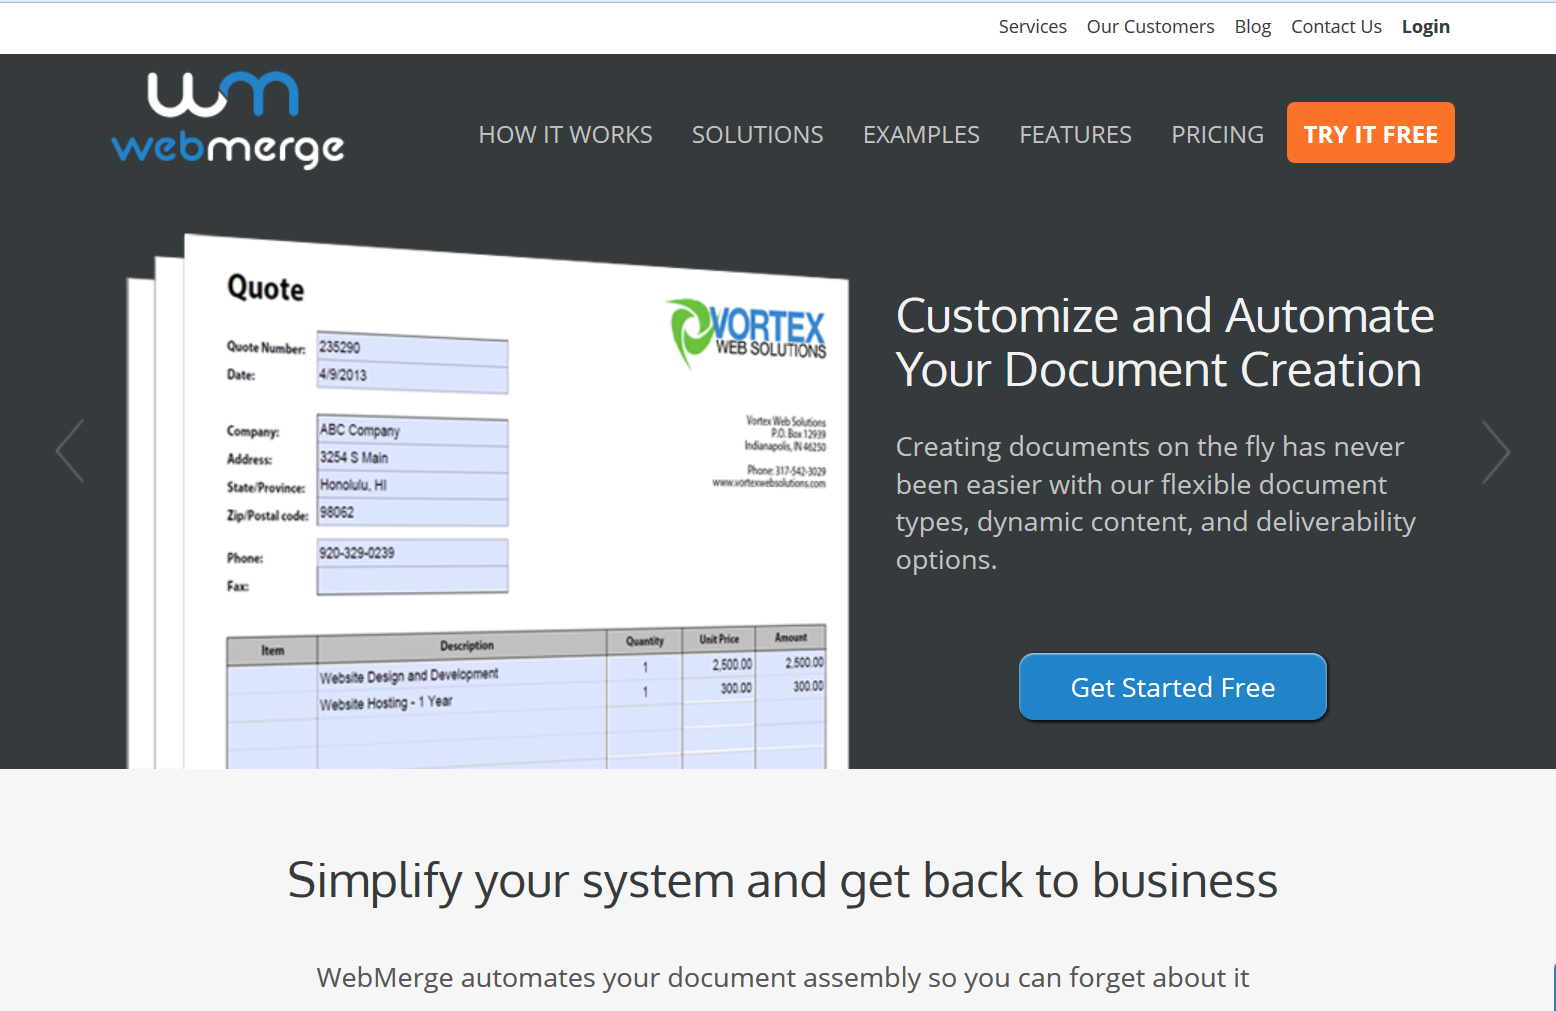 Formstack Documents Software - Formstack Documents provides cloud based document generation